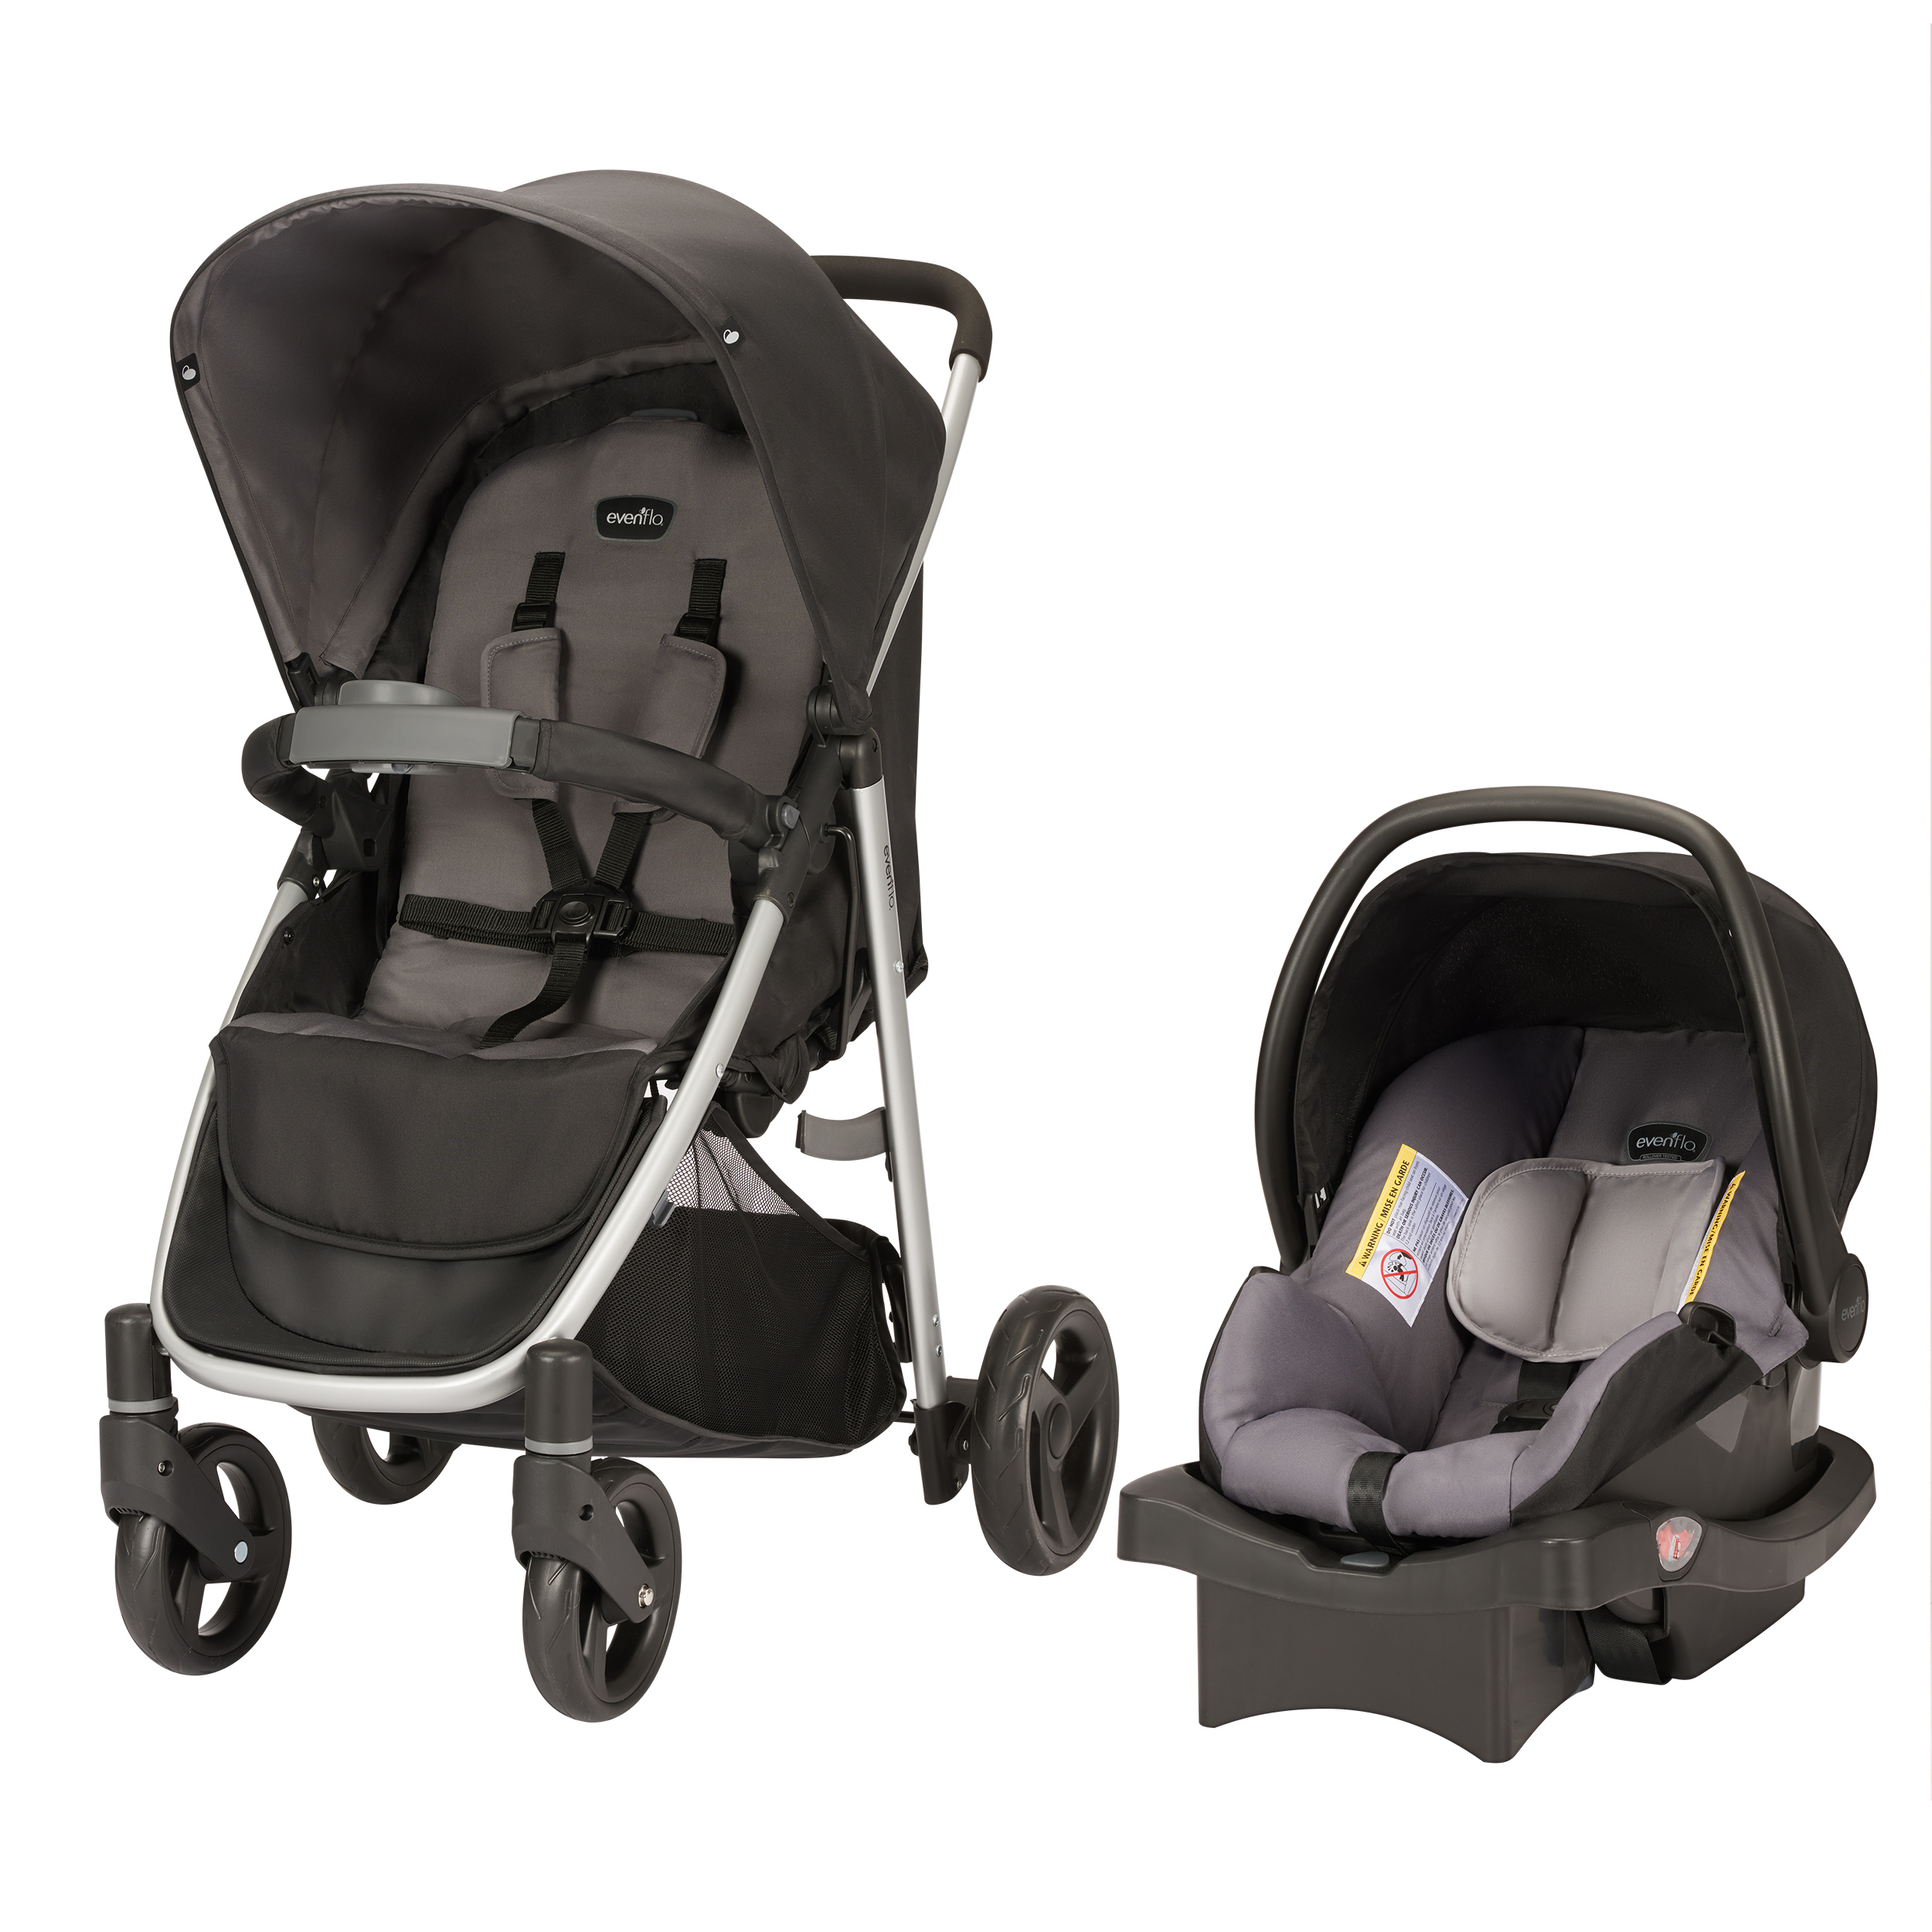 Evenflo FlipSide Travel System, Glenbarr Grey